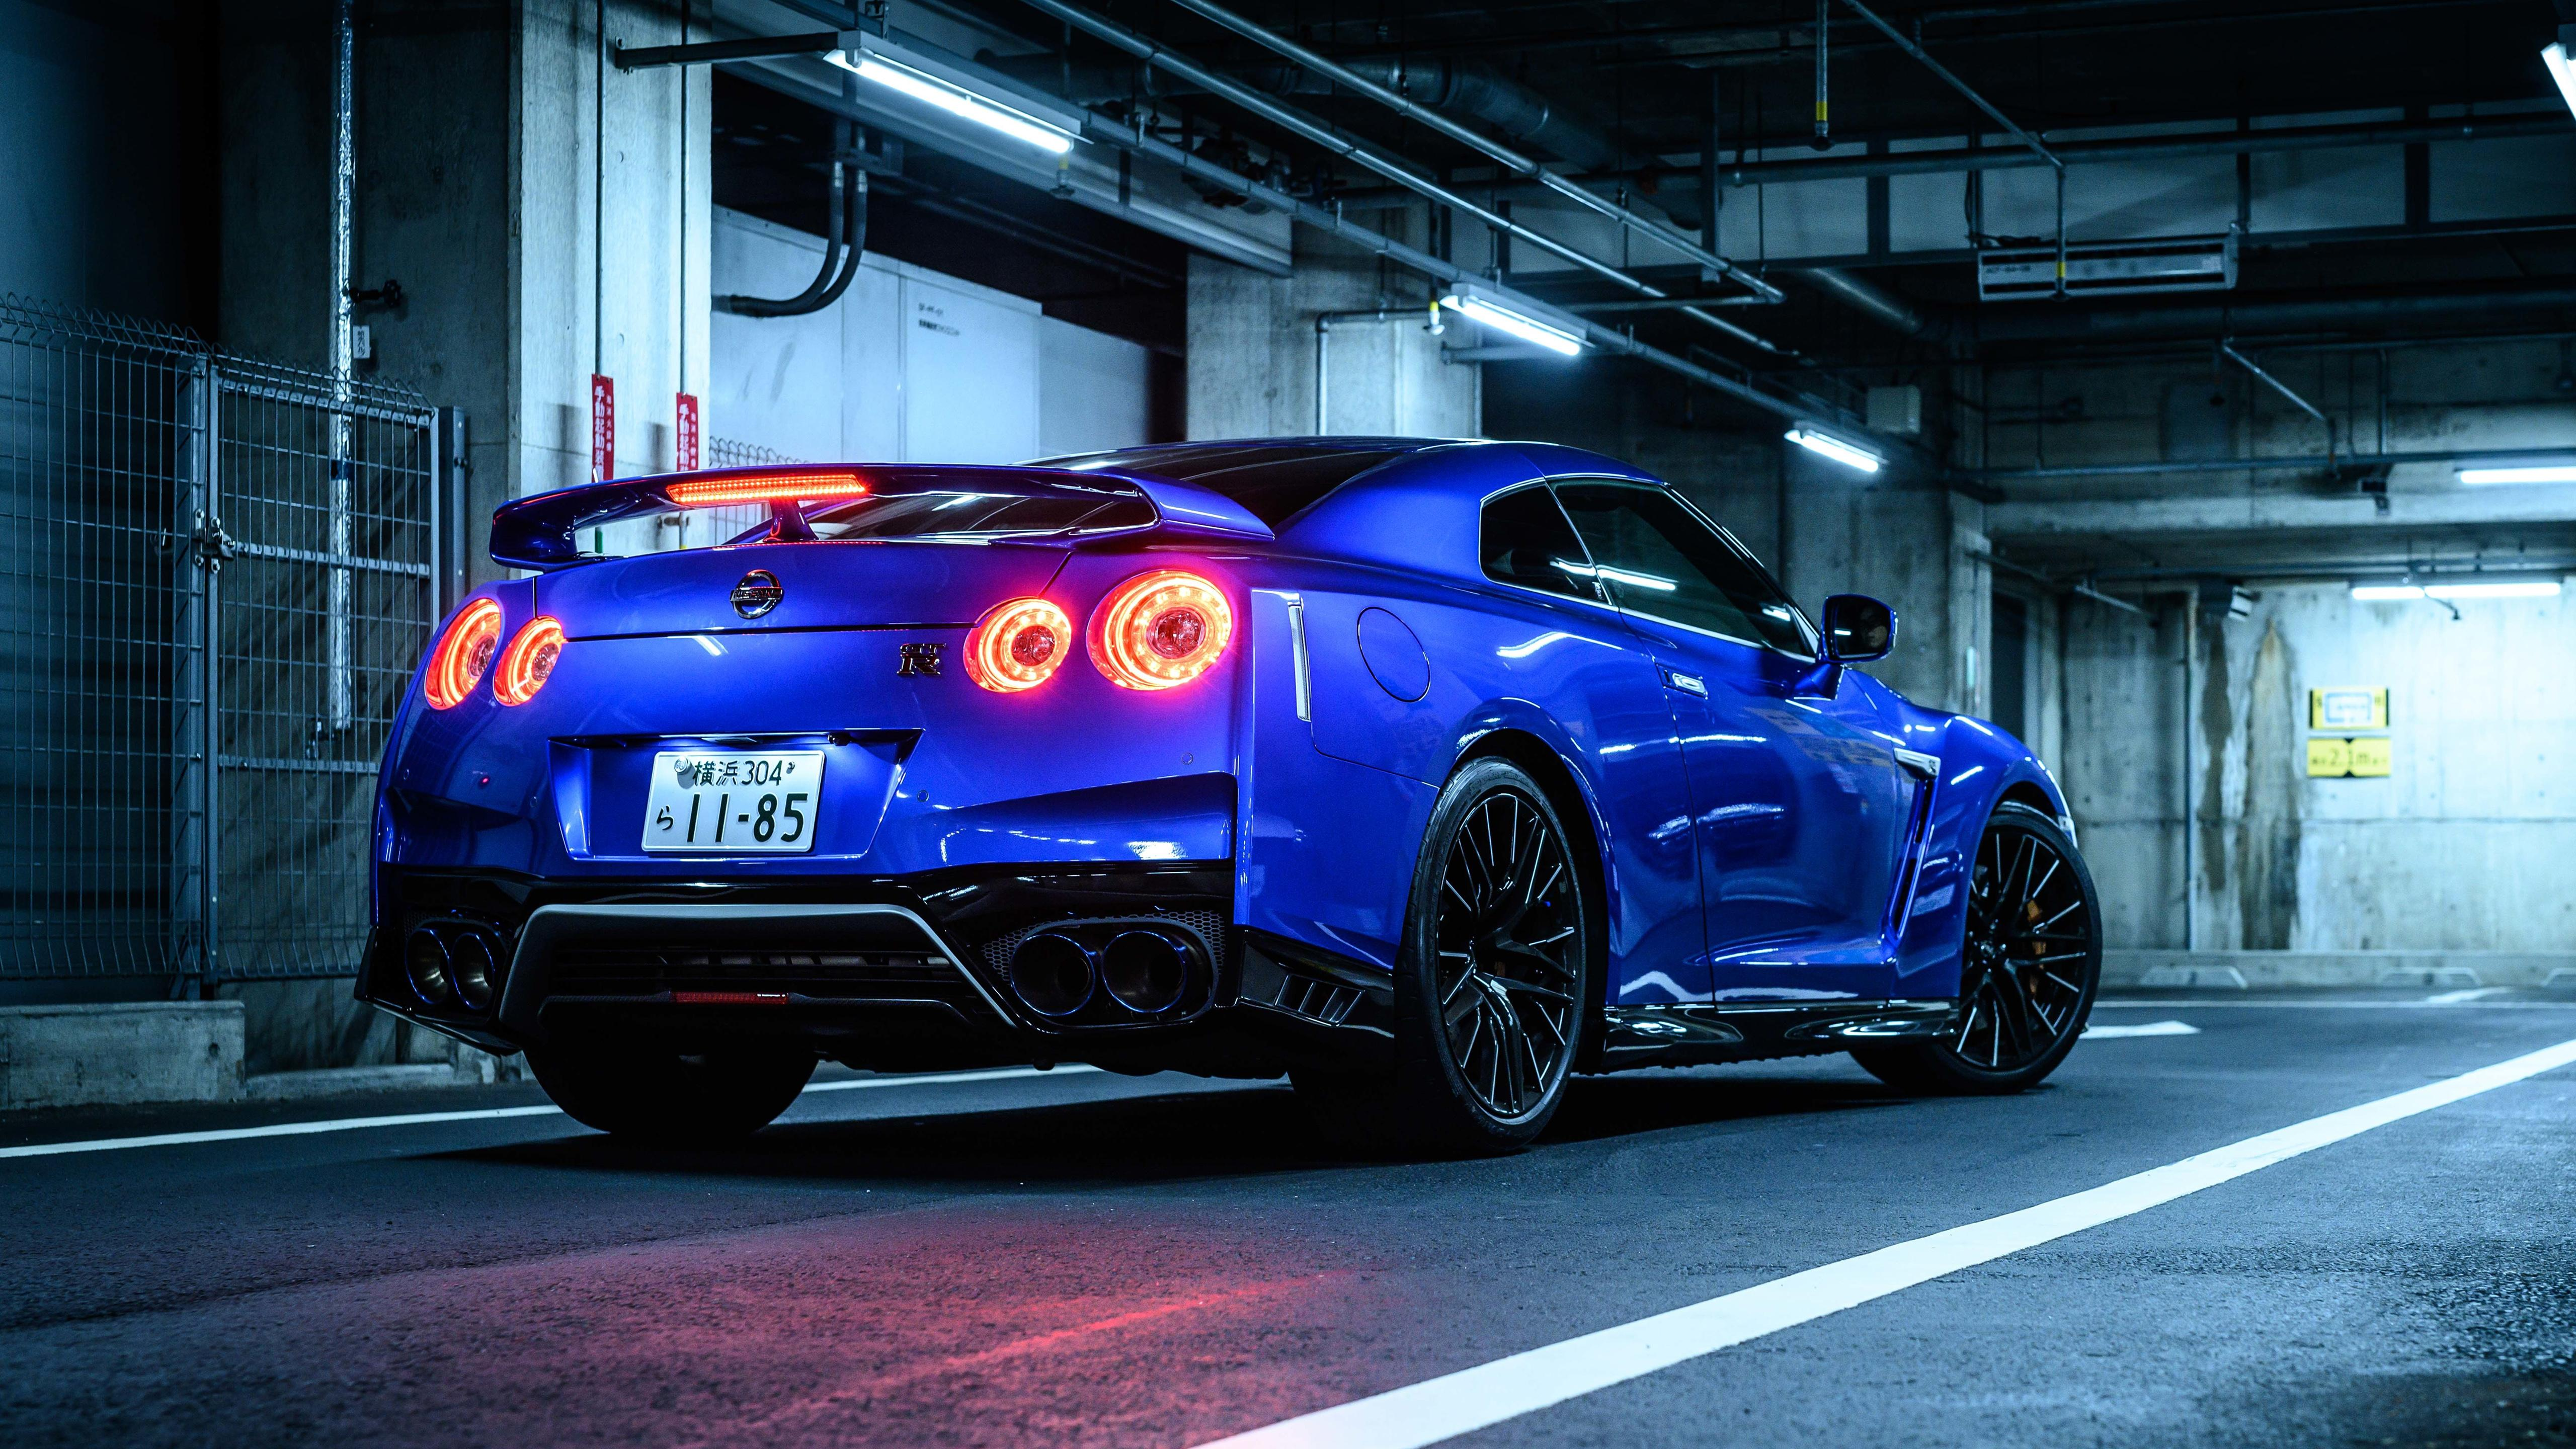 Nissan GT-R 50th Anniversary 2019 Wallpapers - Wallpaper Cave